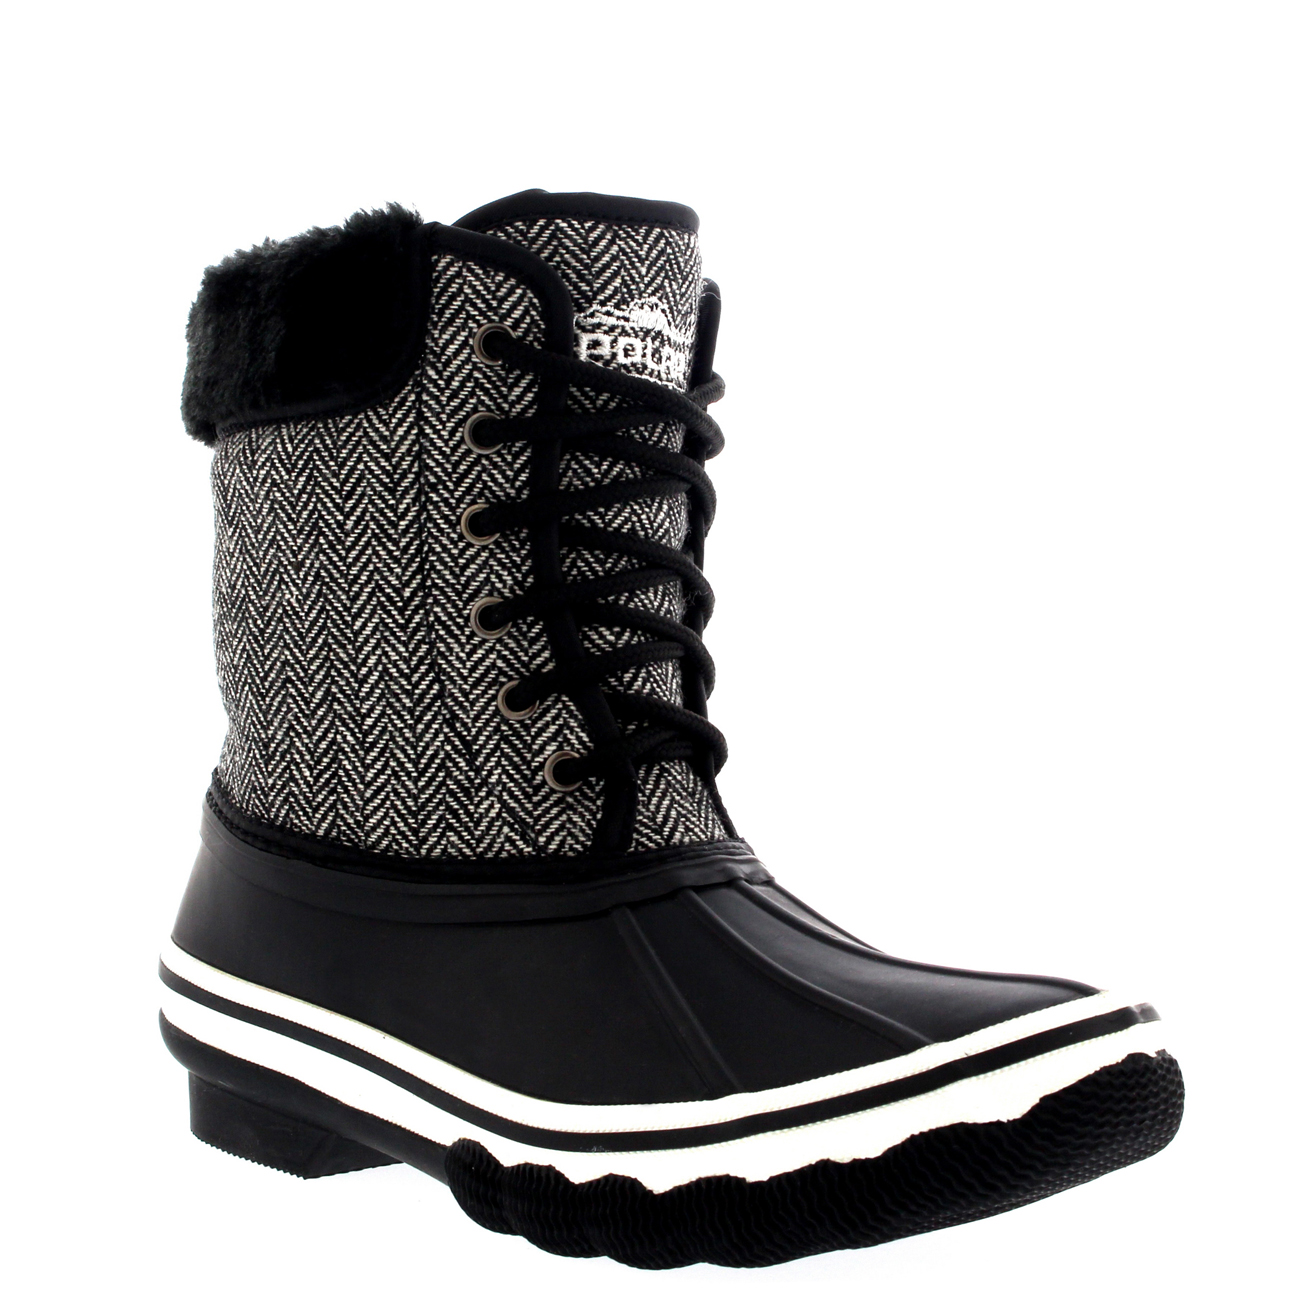 Rubber Snow Boots For Women - Yu Boots